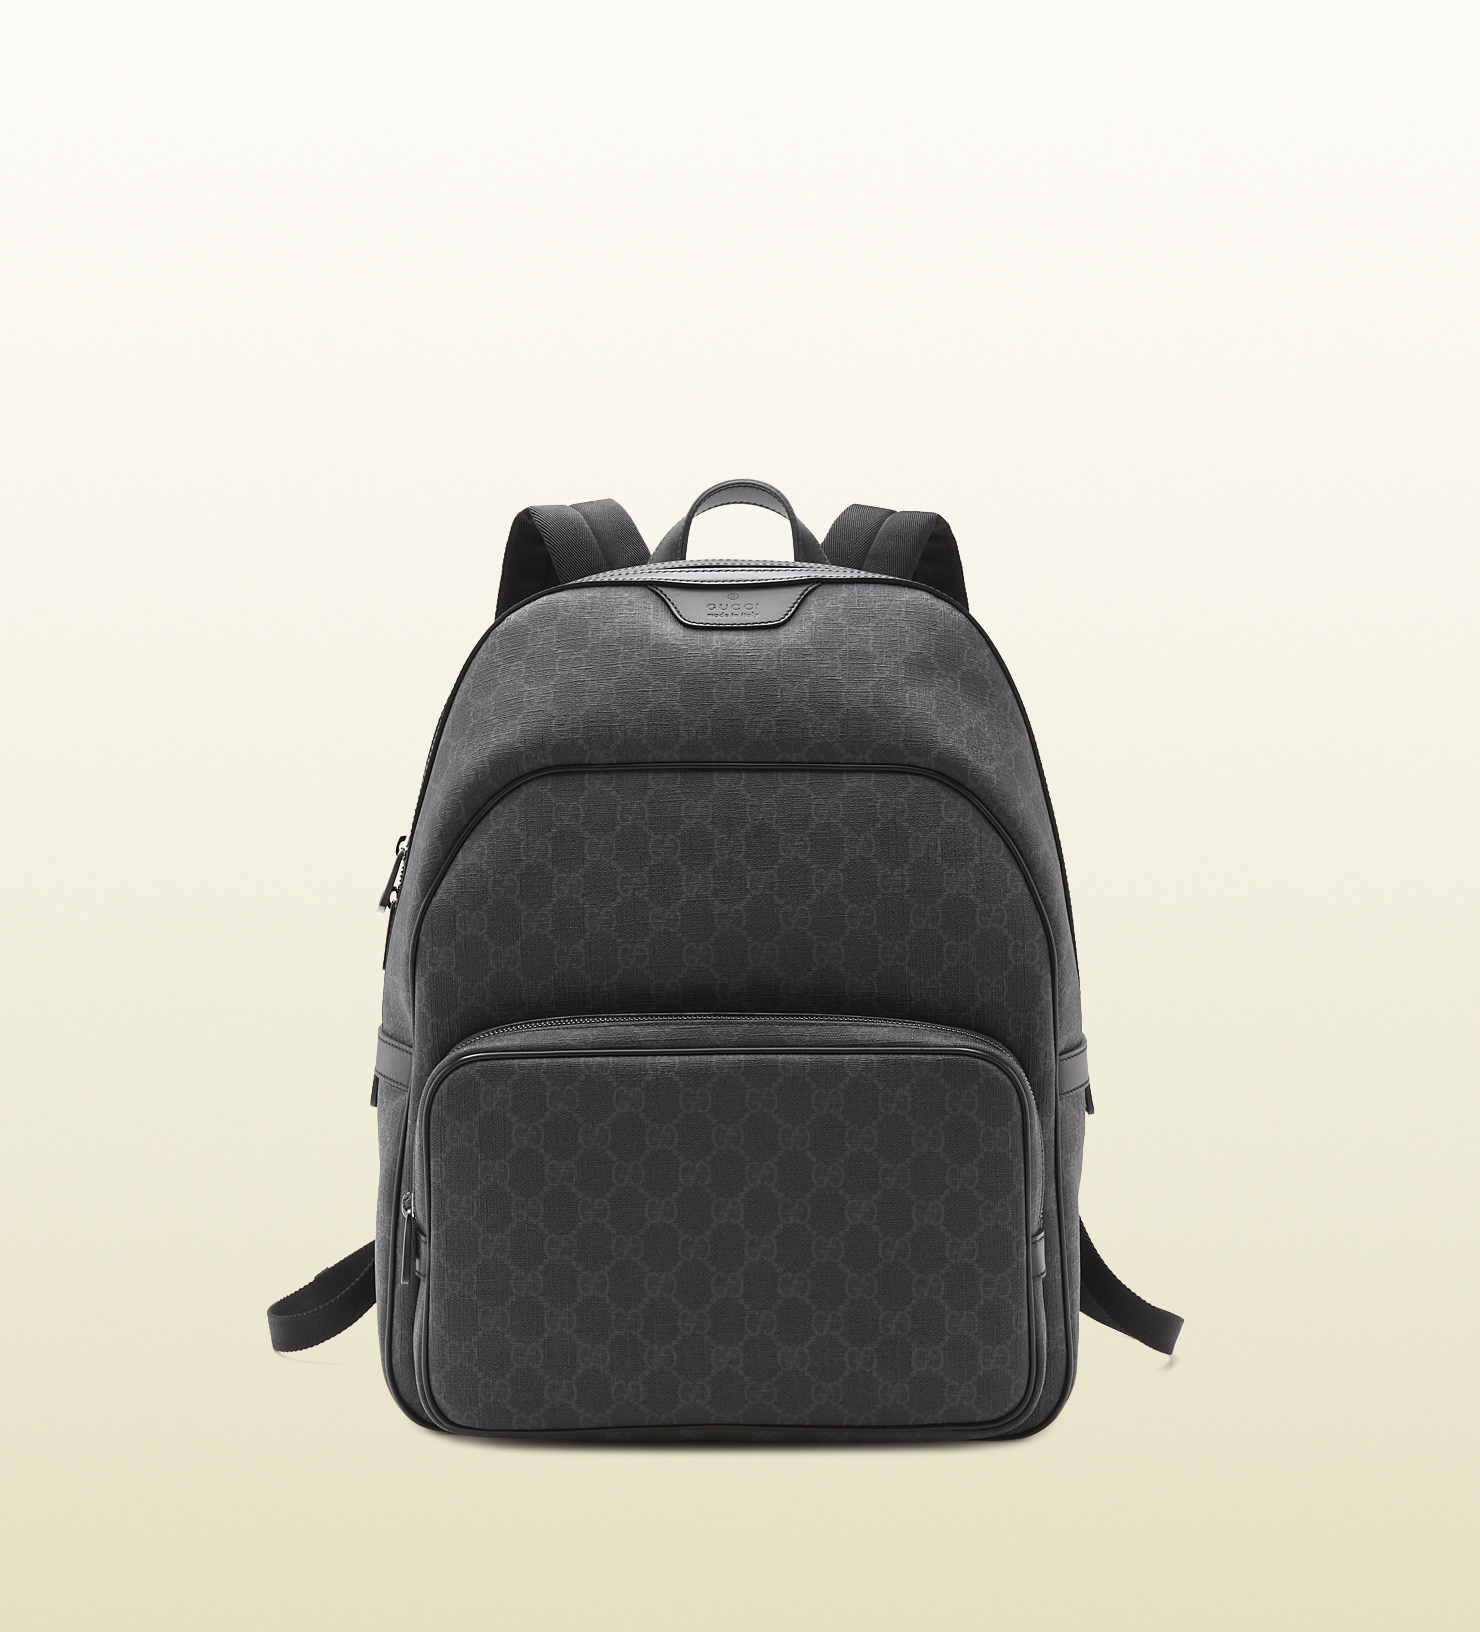 ef6f8f58ba7c Lyst - Gucci Gg Supreme Canvas Backpack in Gray for Men